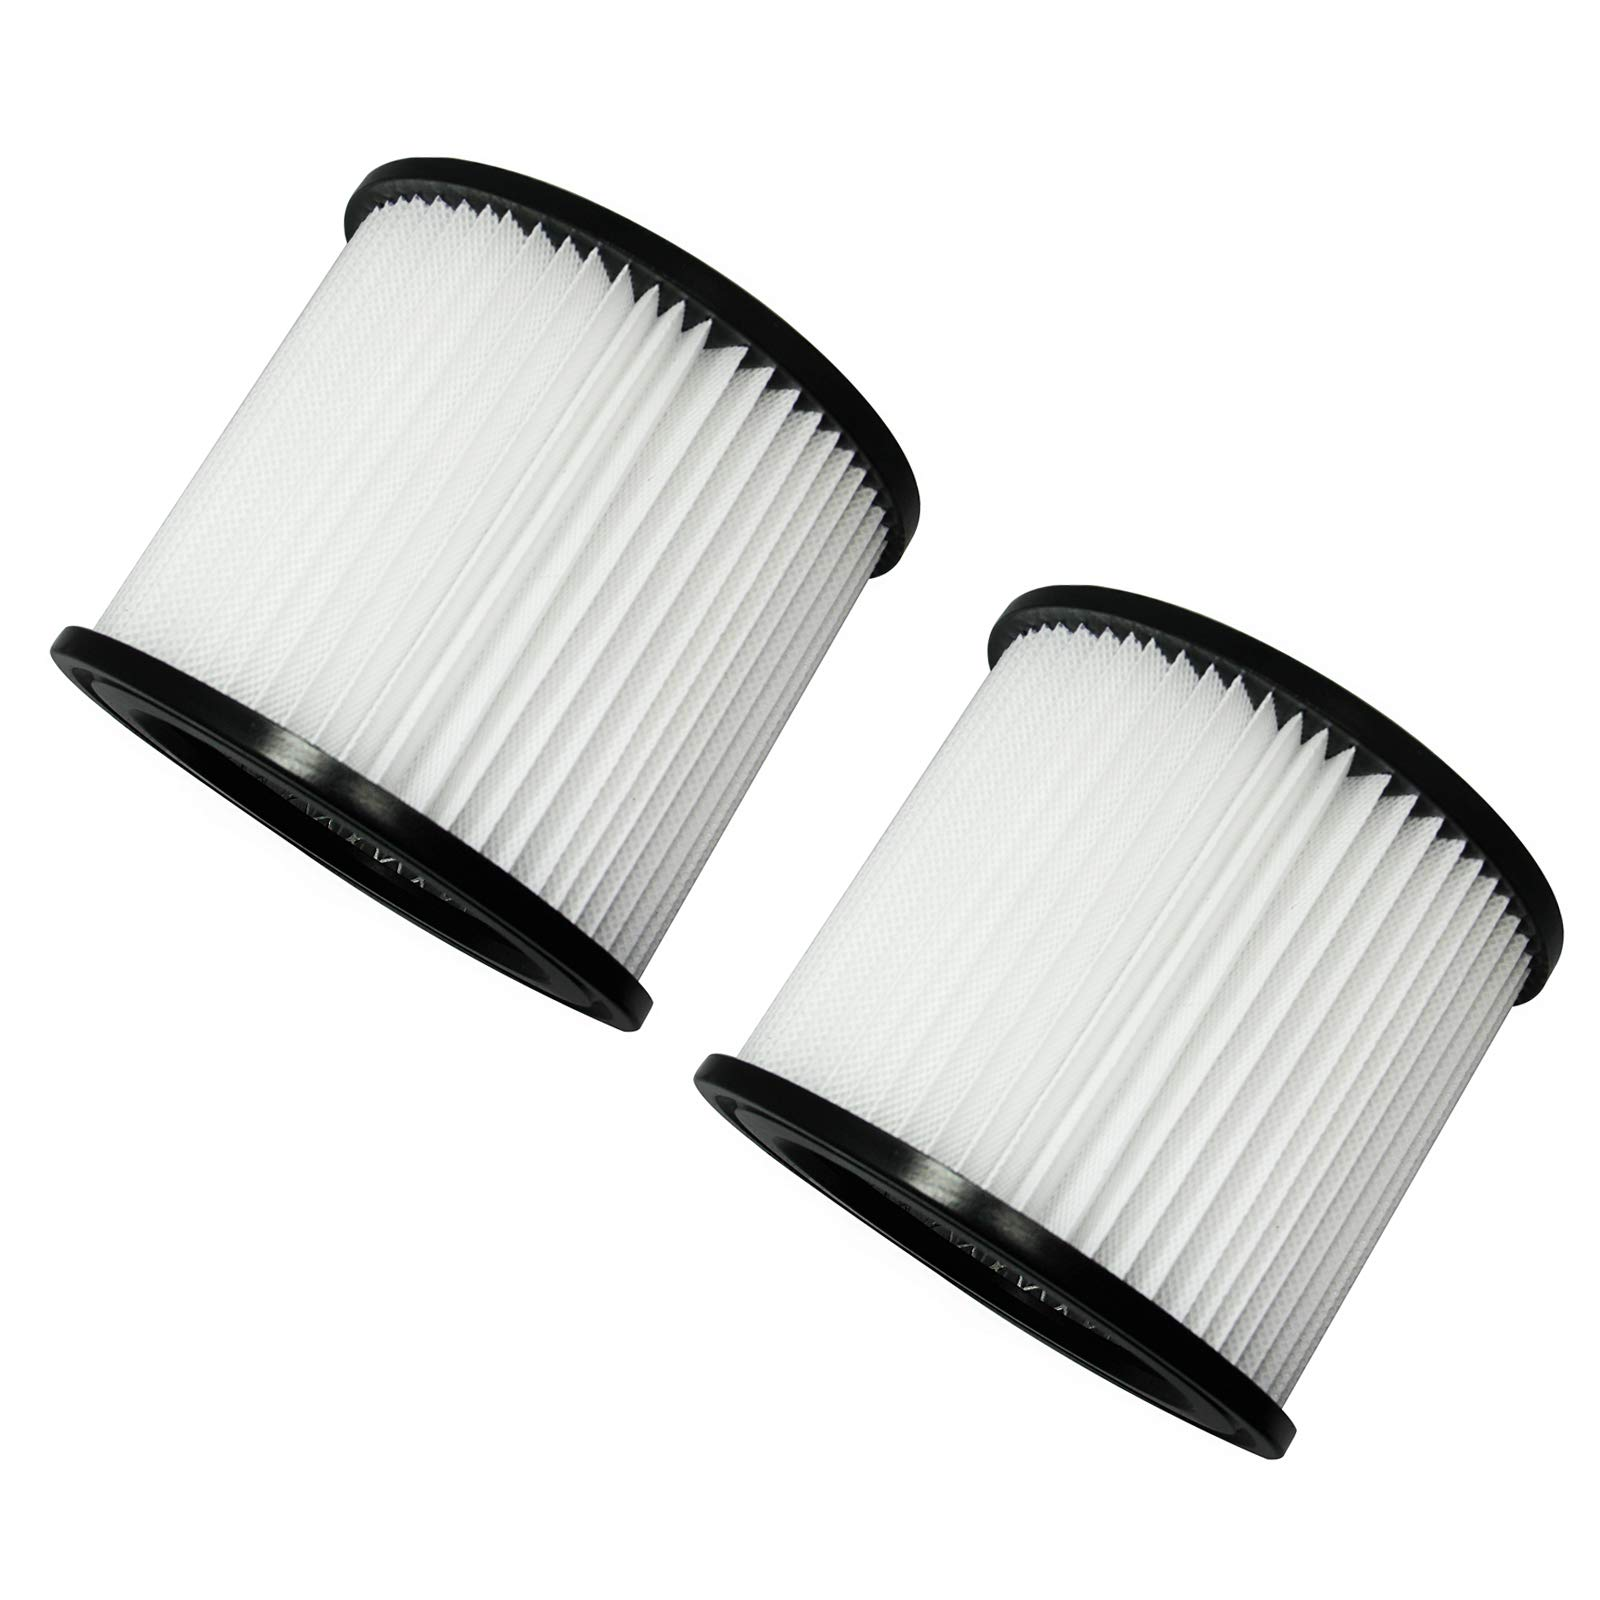 MaximalPower Compatible Filter Replacement for 903-98, 9039800, 903-98-00, 90398 Shop-Vac Wet/Dry Vacuum